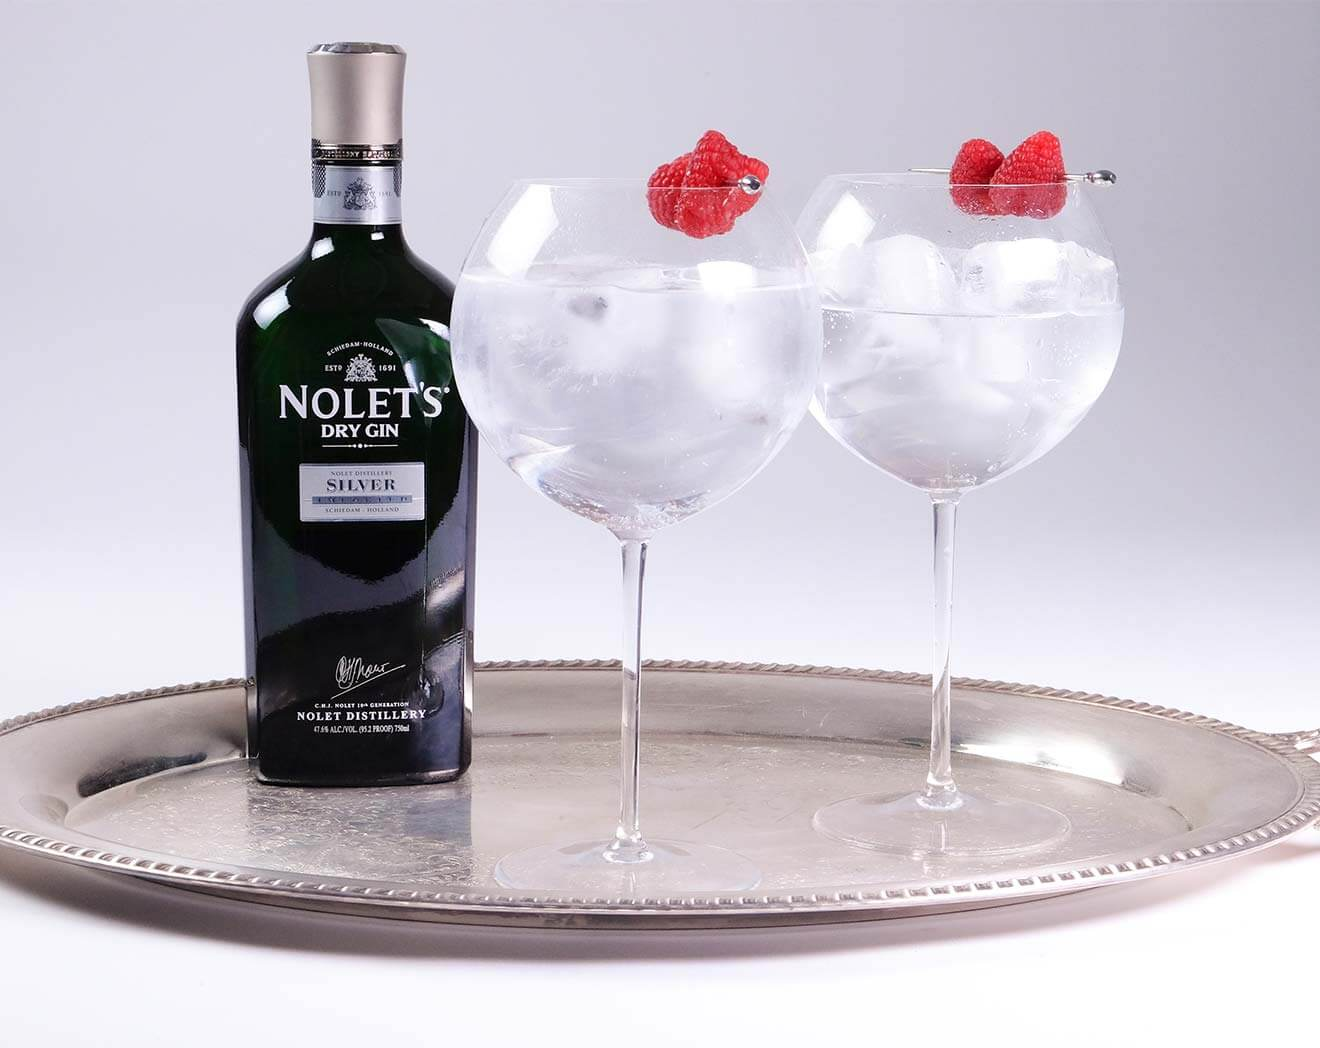 NOLET'S Silver Tonic, bottle and cocktails on silver tray